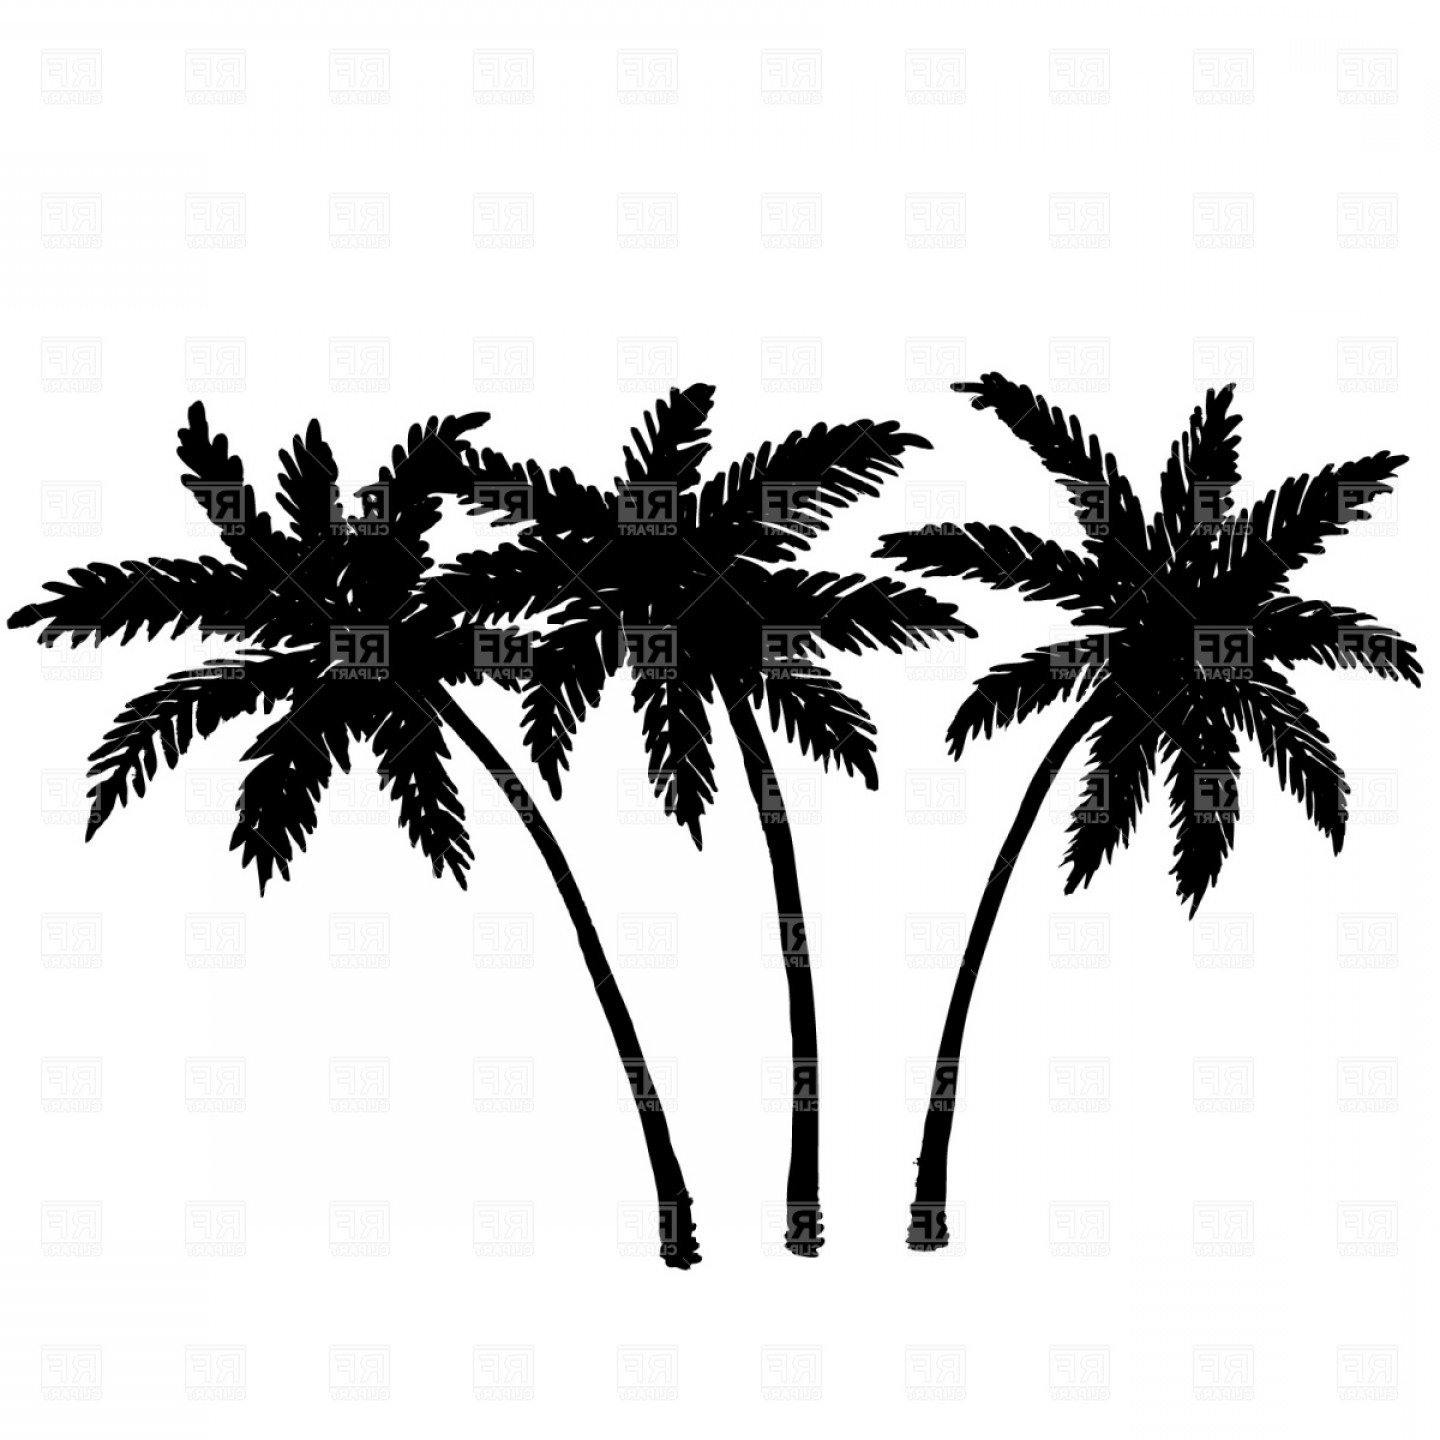 Tree Silhouette Vector Clip Art: Three Palm Trees Silhouette Vector Clipart